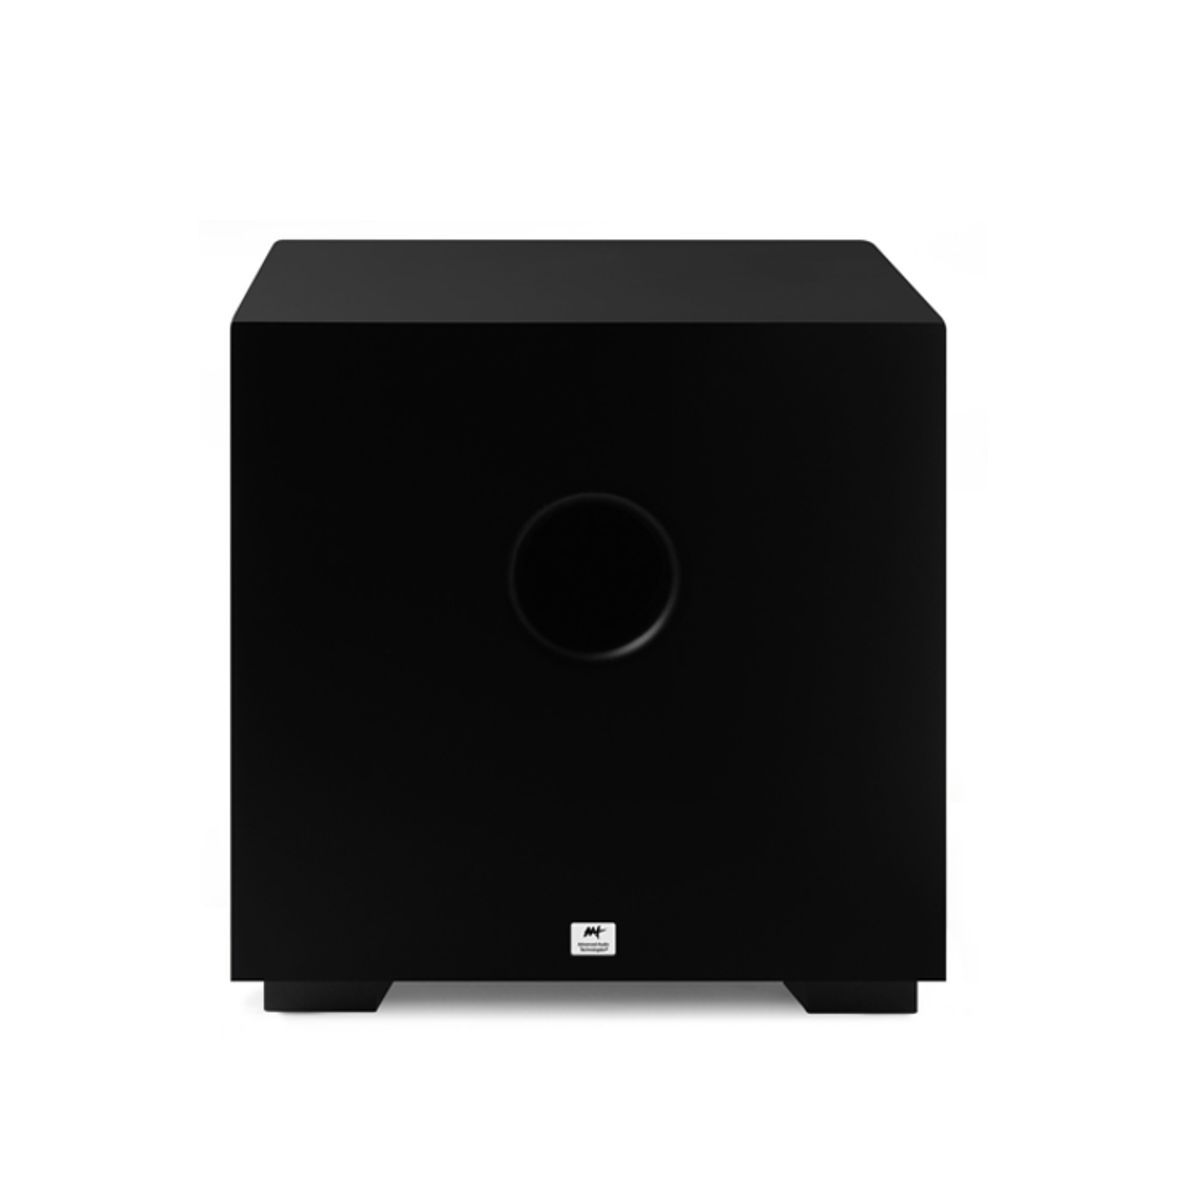 "Subwoofer Wireless Ativo Compact Cube 8"" 200W RMS AAT"